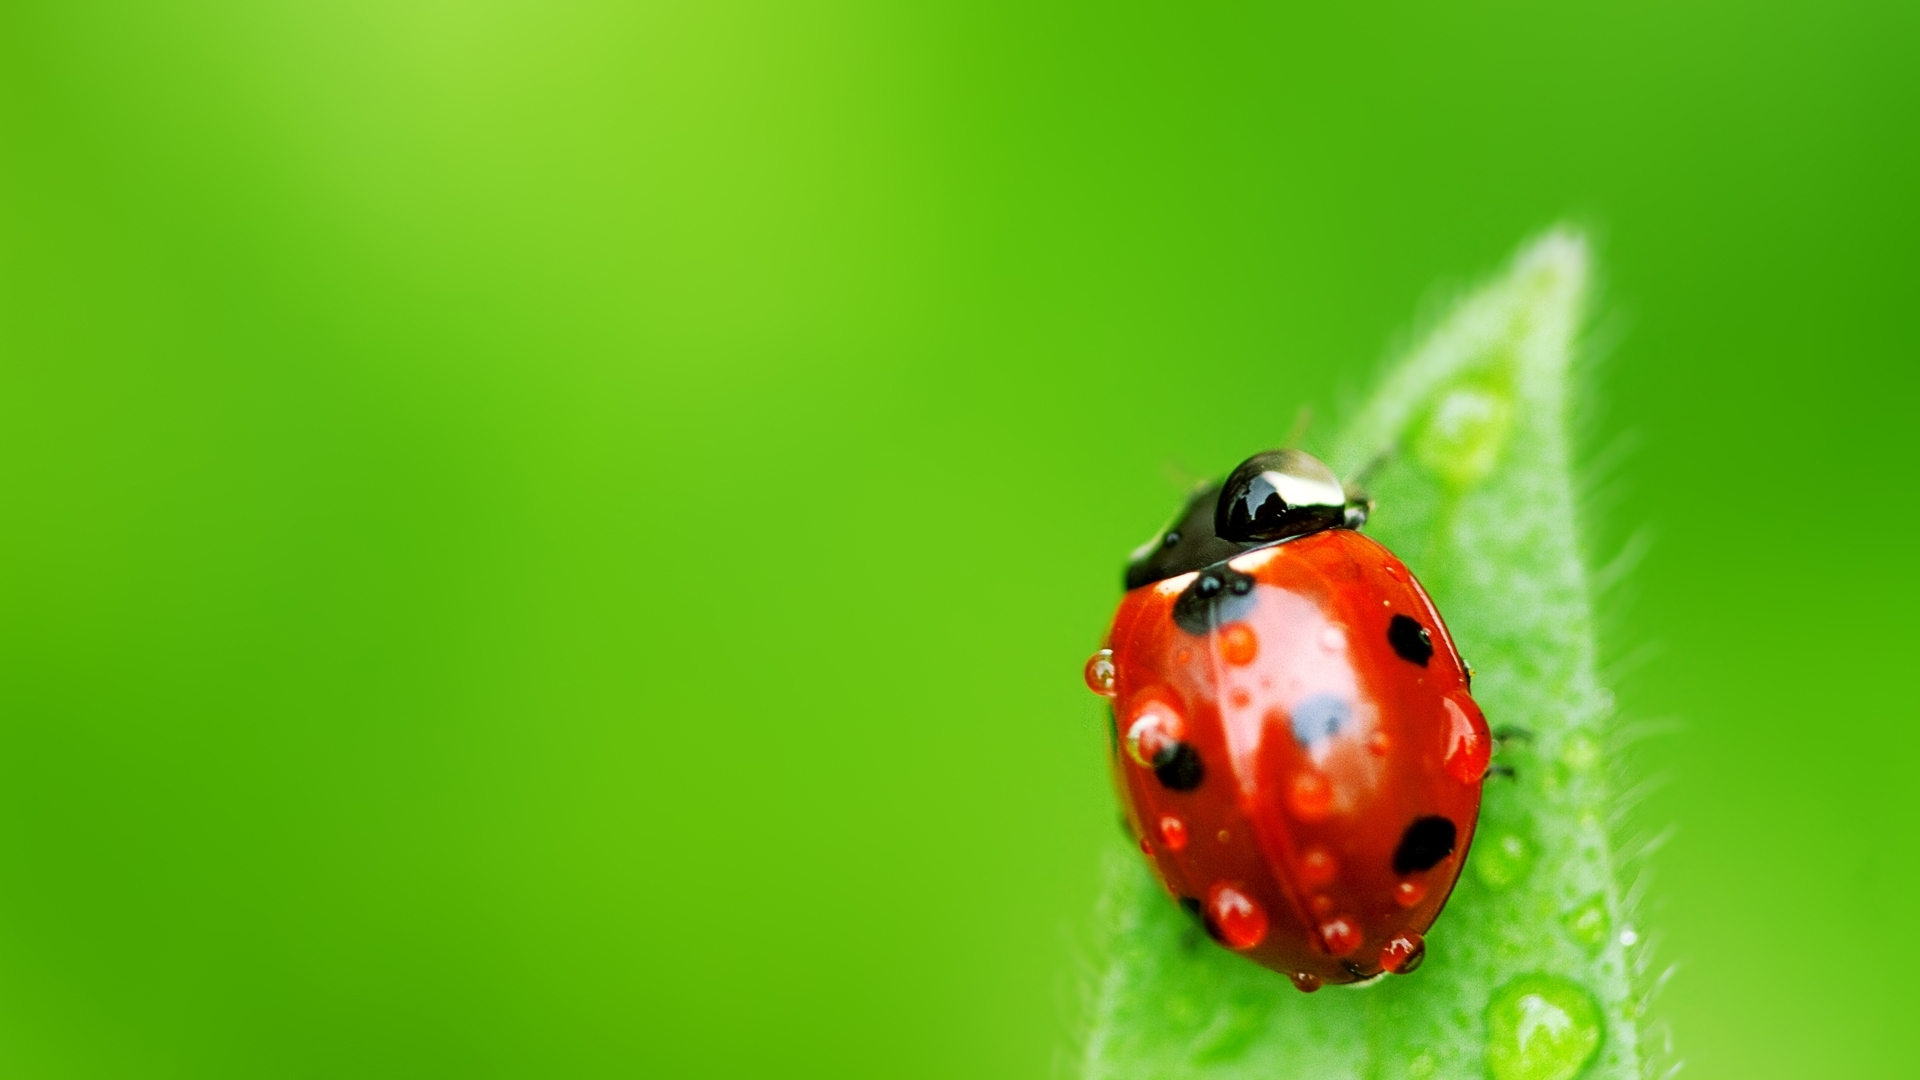 Abstract Water Drops Insects God Ladybird Rosa Hd 551305 Wallpaper wallpaper